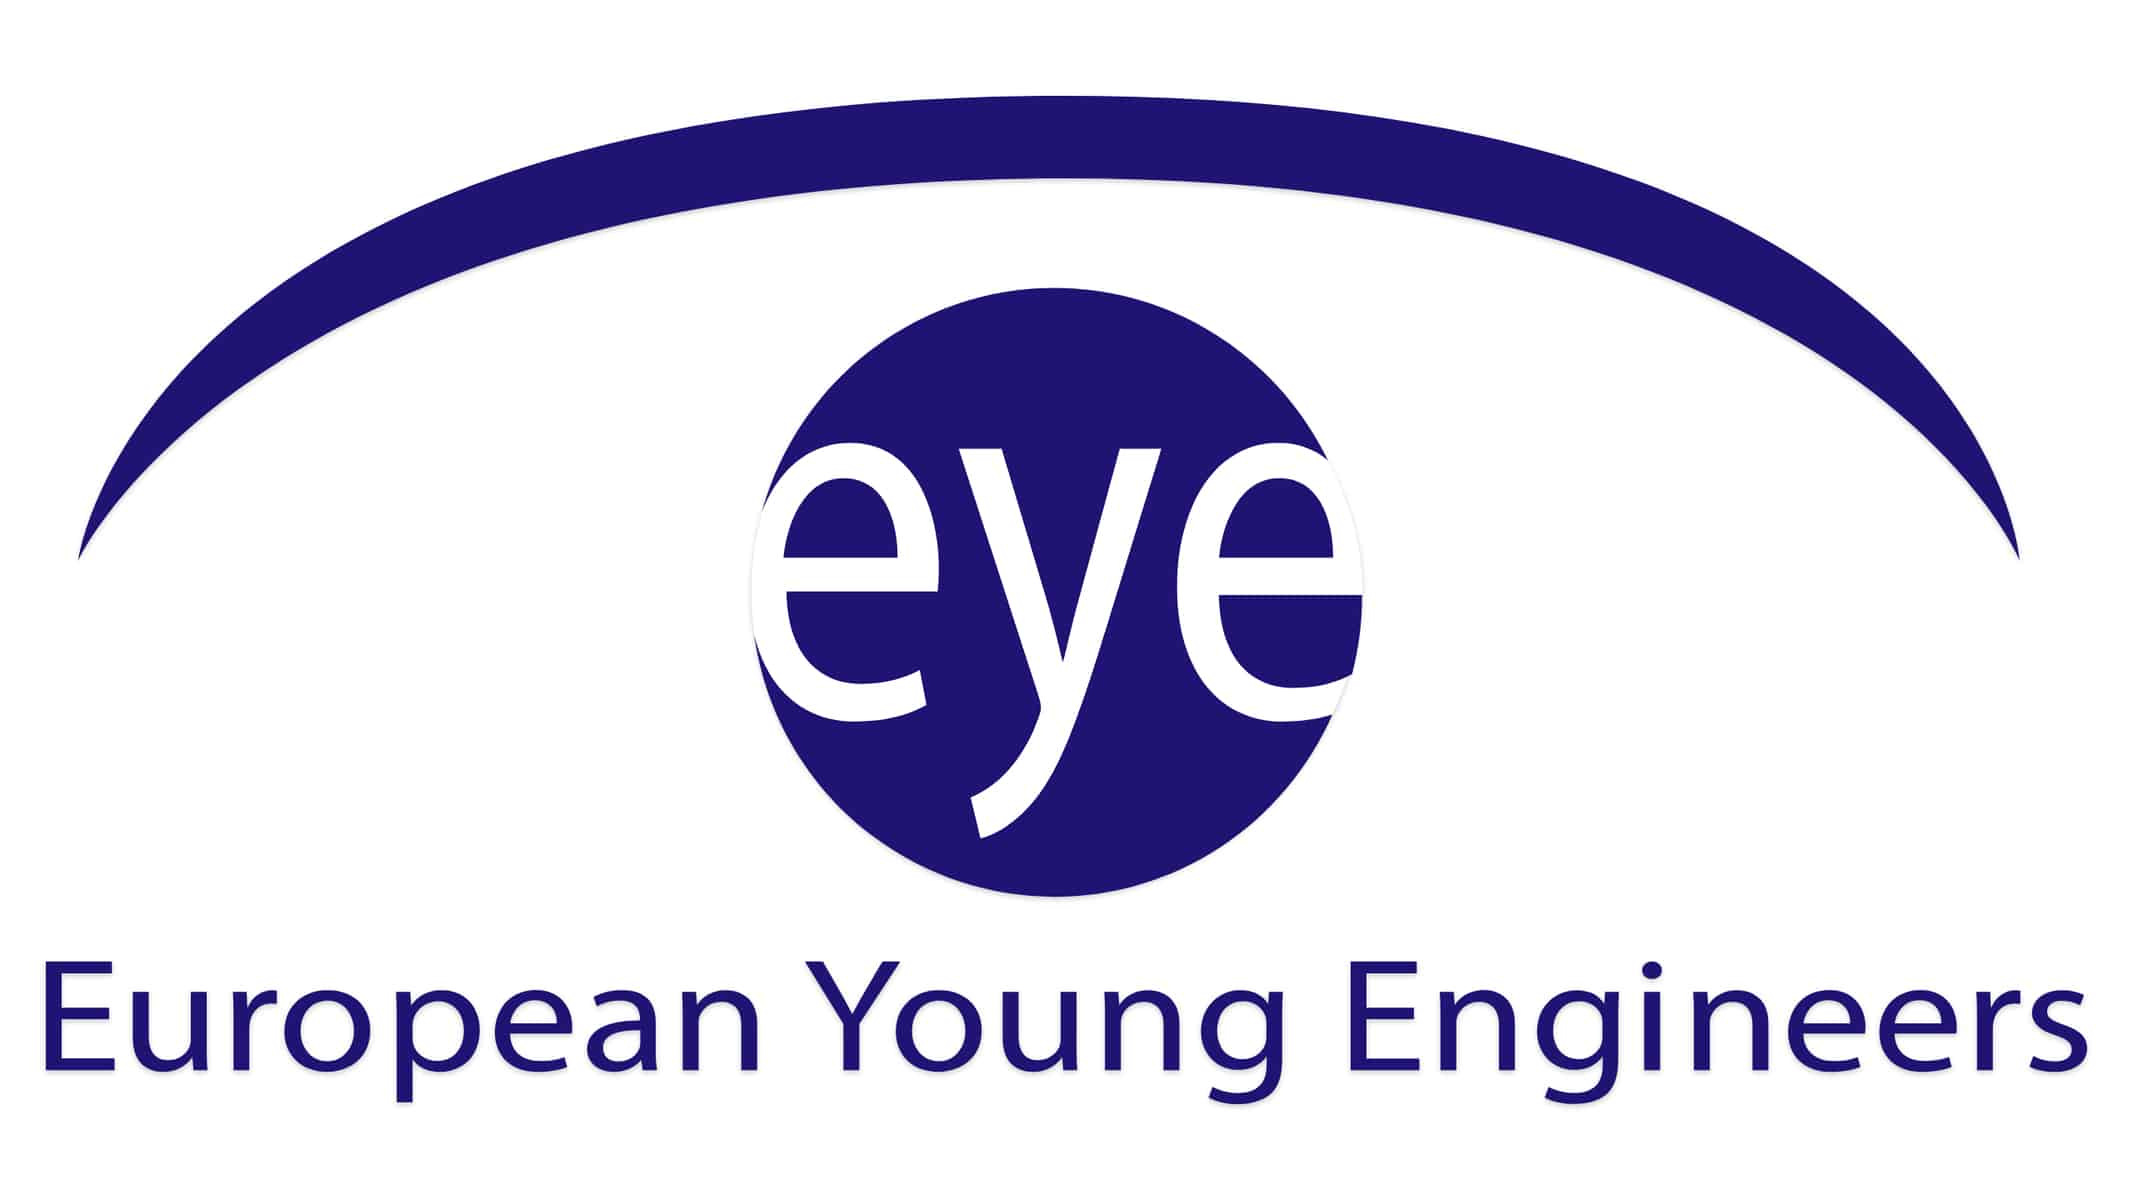 European Young Engineers